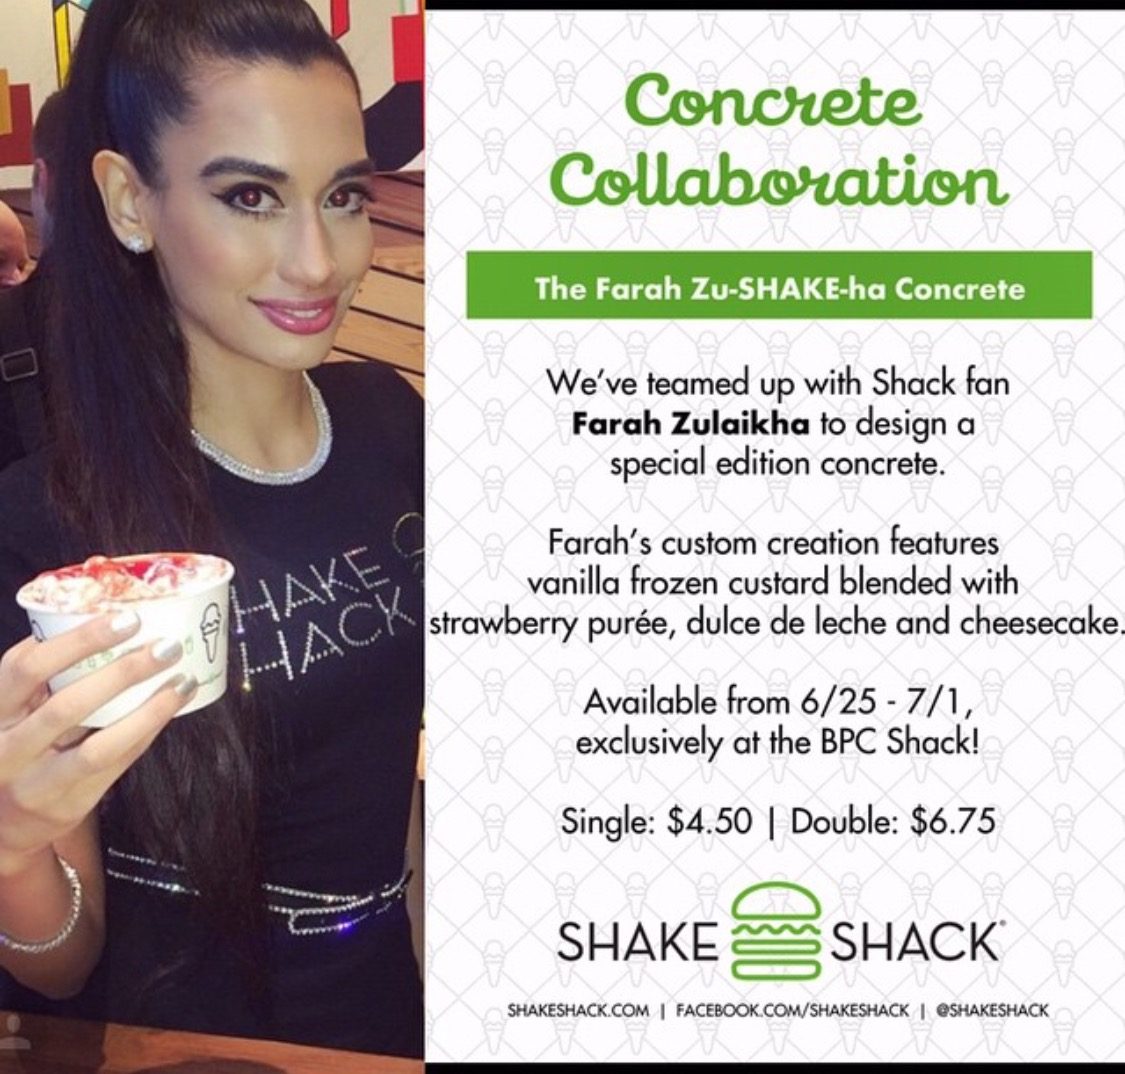 IT'S FINALLY HERE! The Farah Zu-SHAKE-Ha Concrete at Shake Shack! Check out the mouth-watering ingredients, courtesy of Culinary Director and Celebrity Chef Mark Rosati!